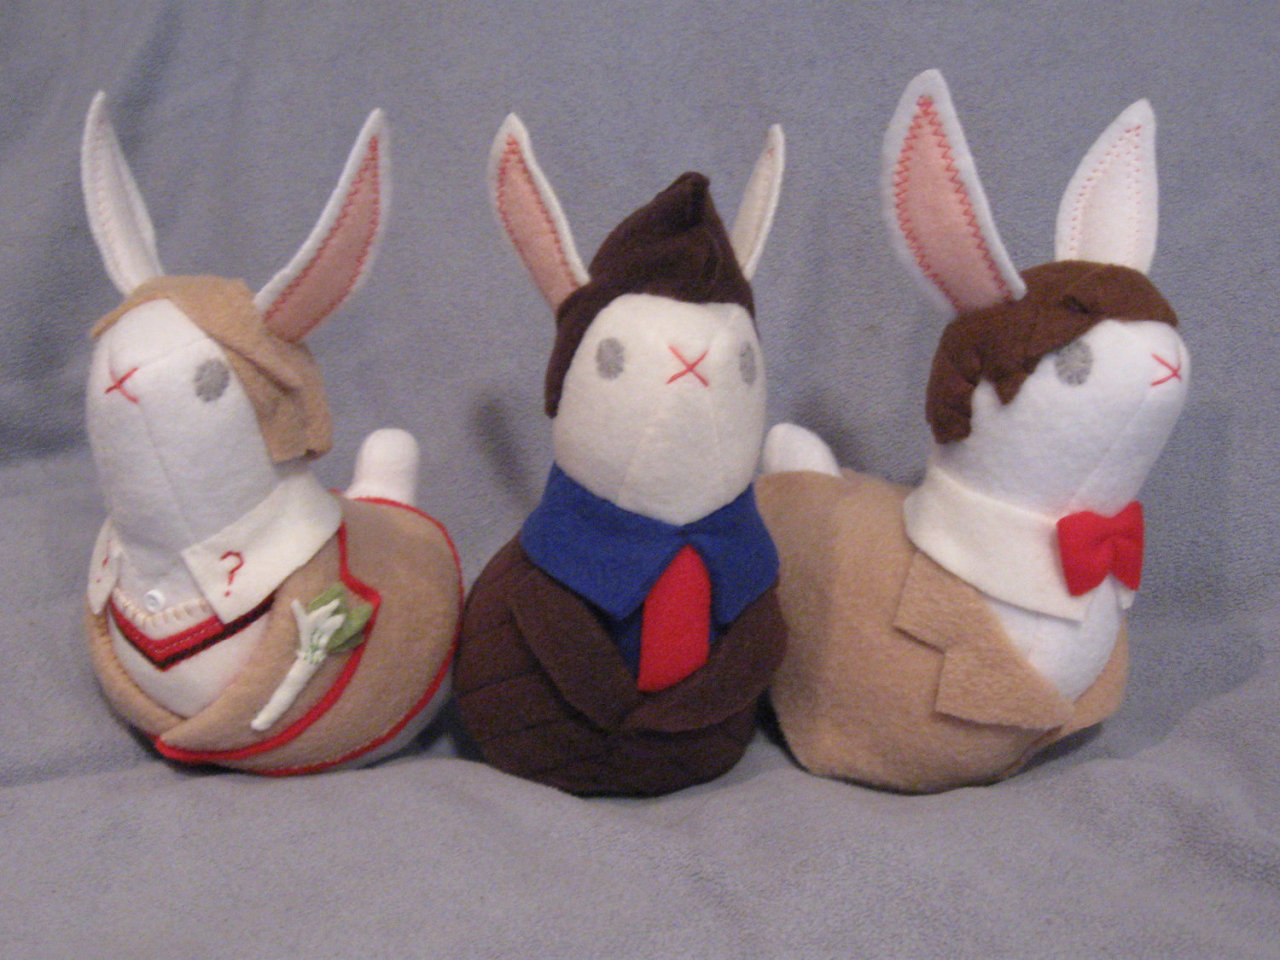 Happy Muesday! Here are some bunnies that look like the Docotor(s)… thats all I got.